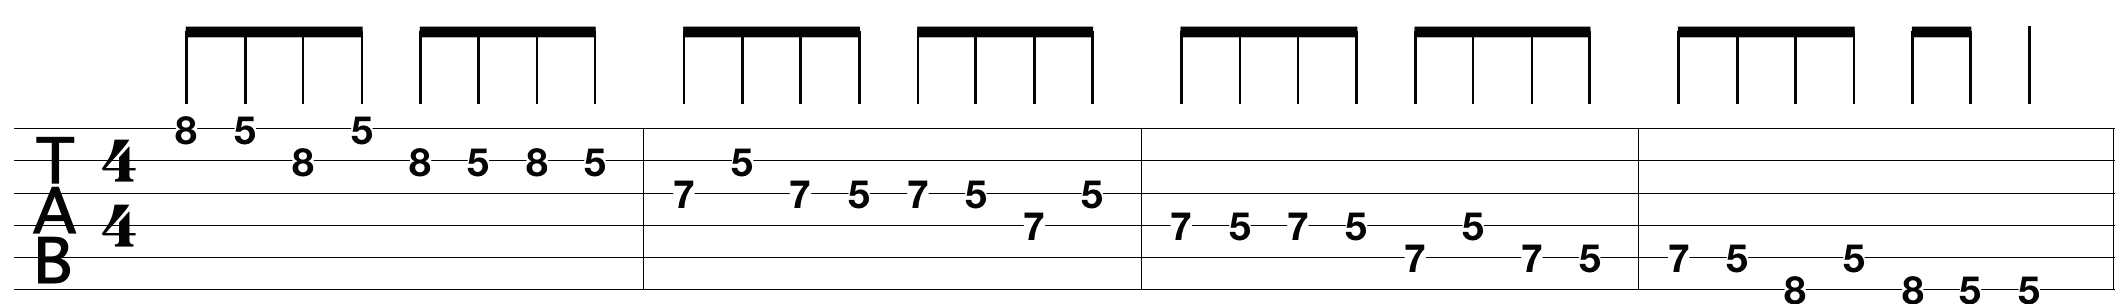 super-easy-guitar-tabs_2.png